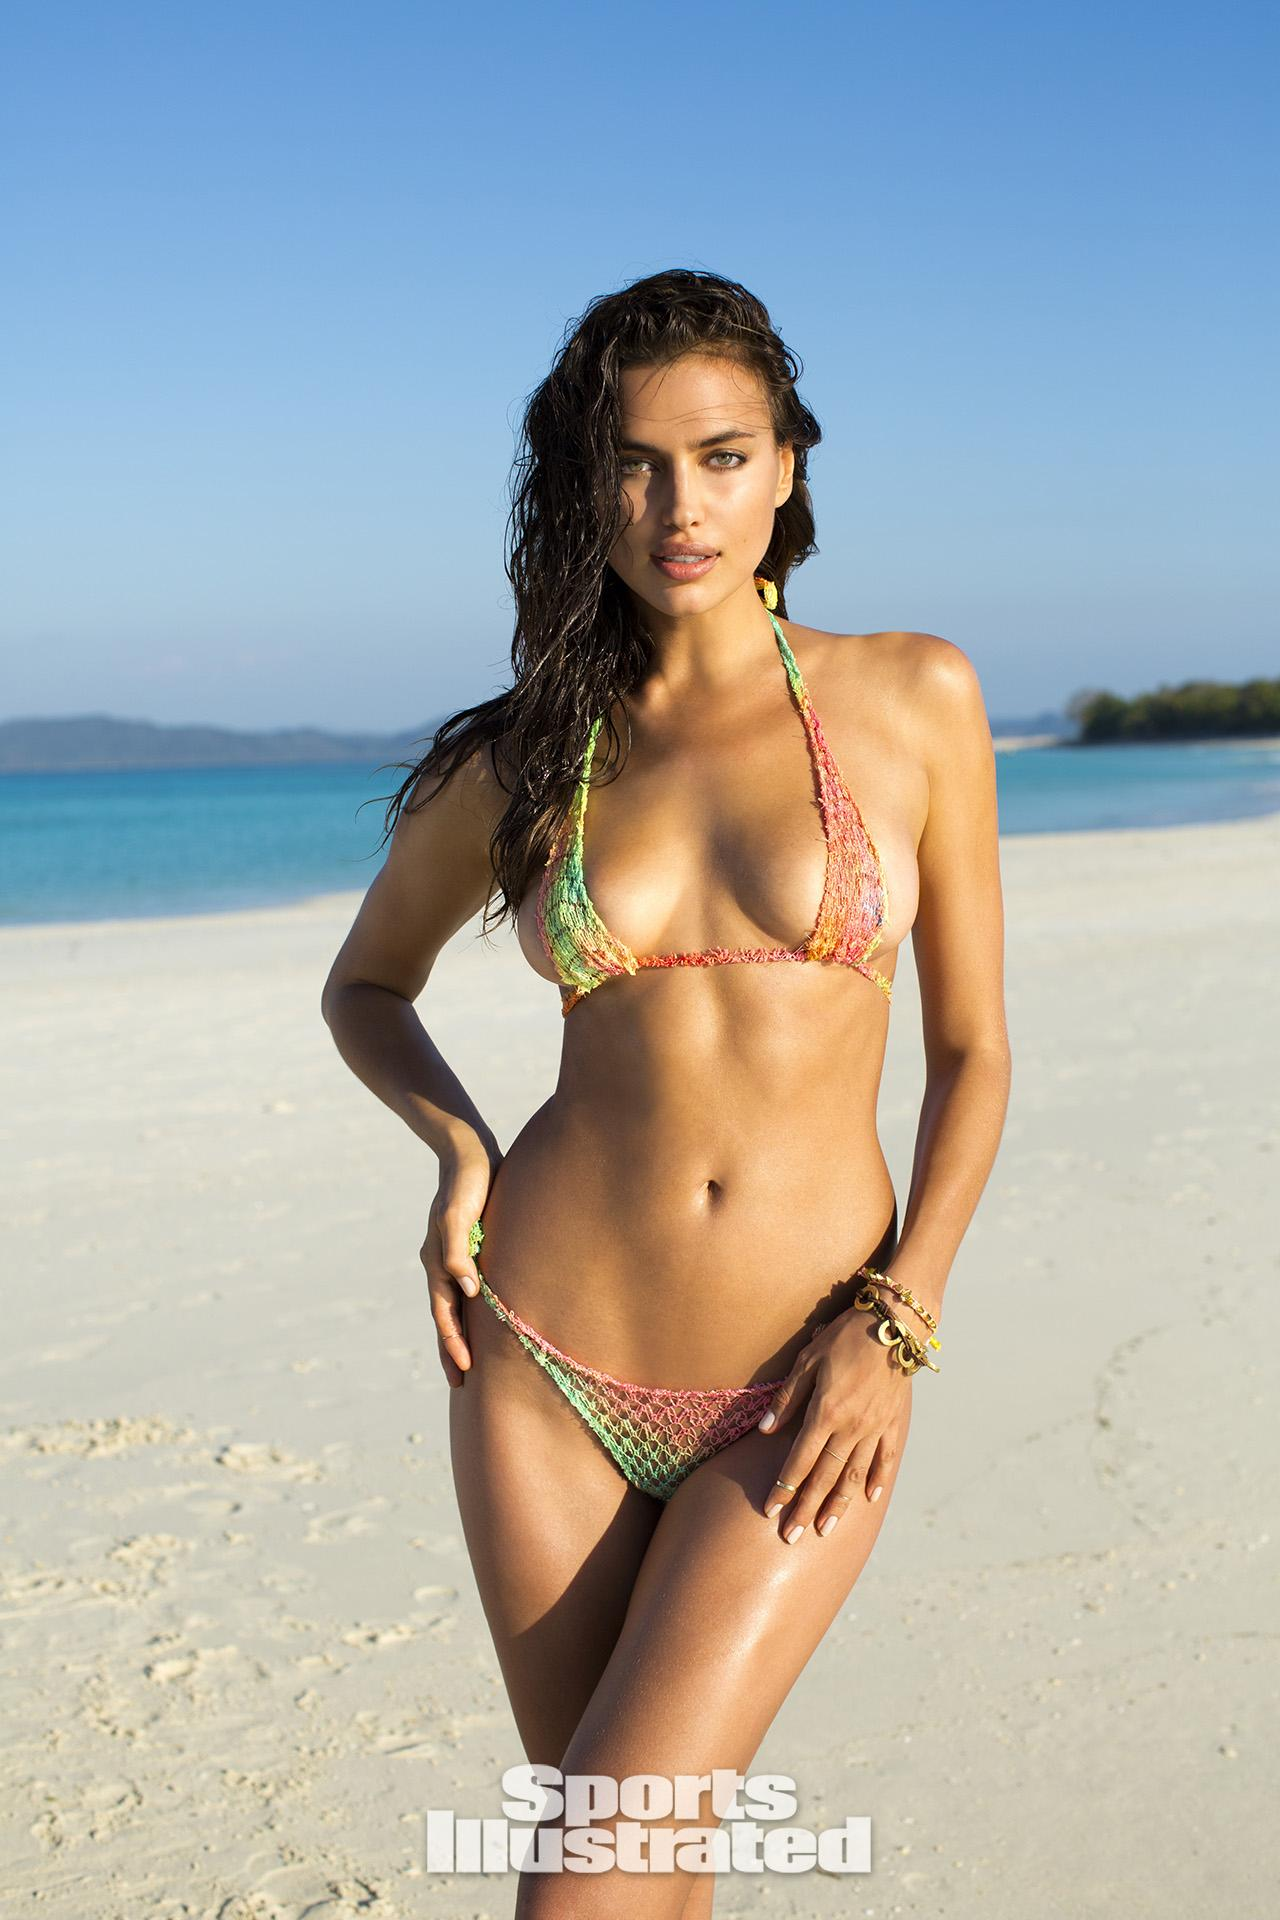 Swimsuit Models Topless photo 30